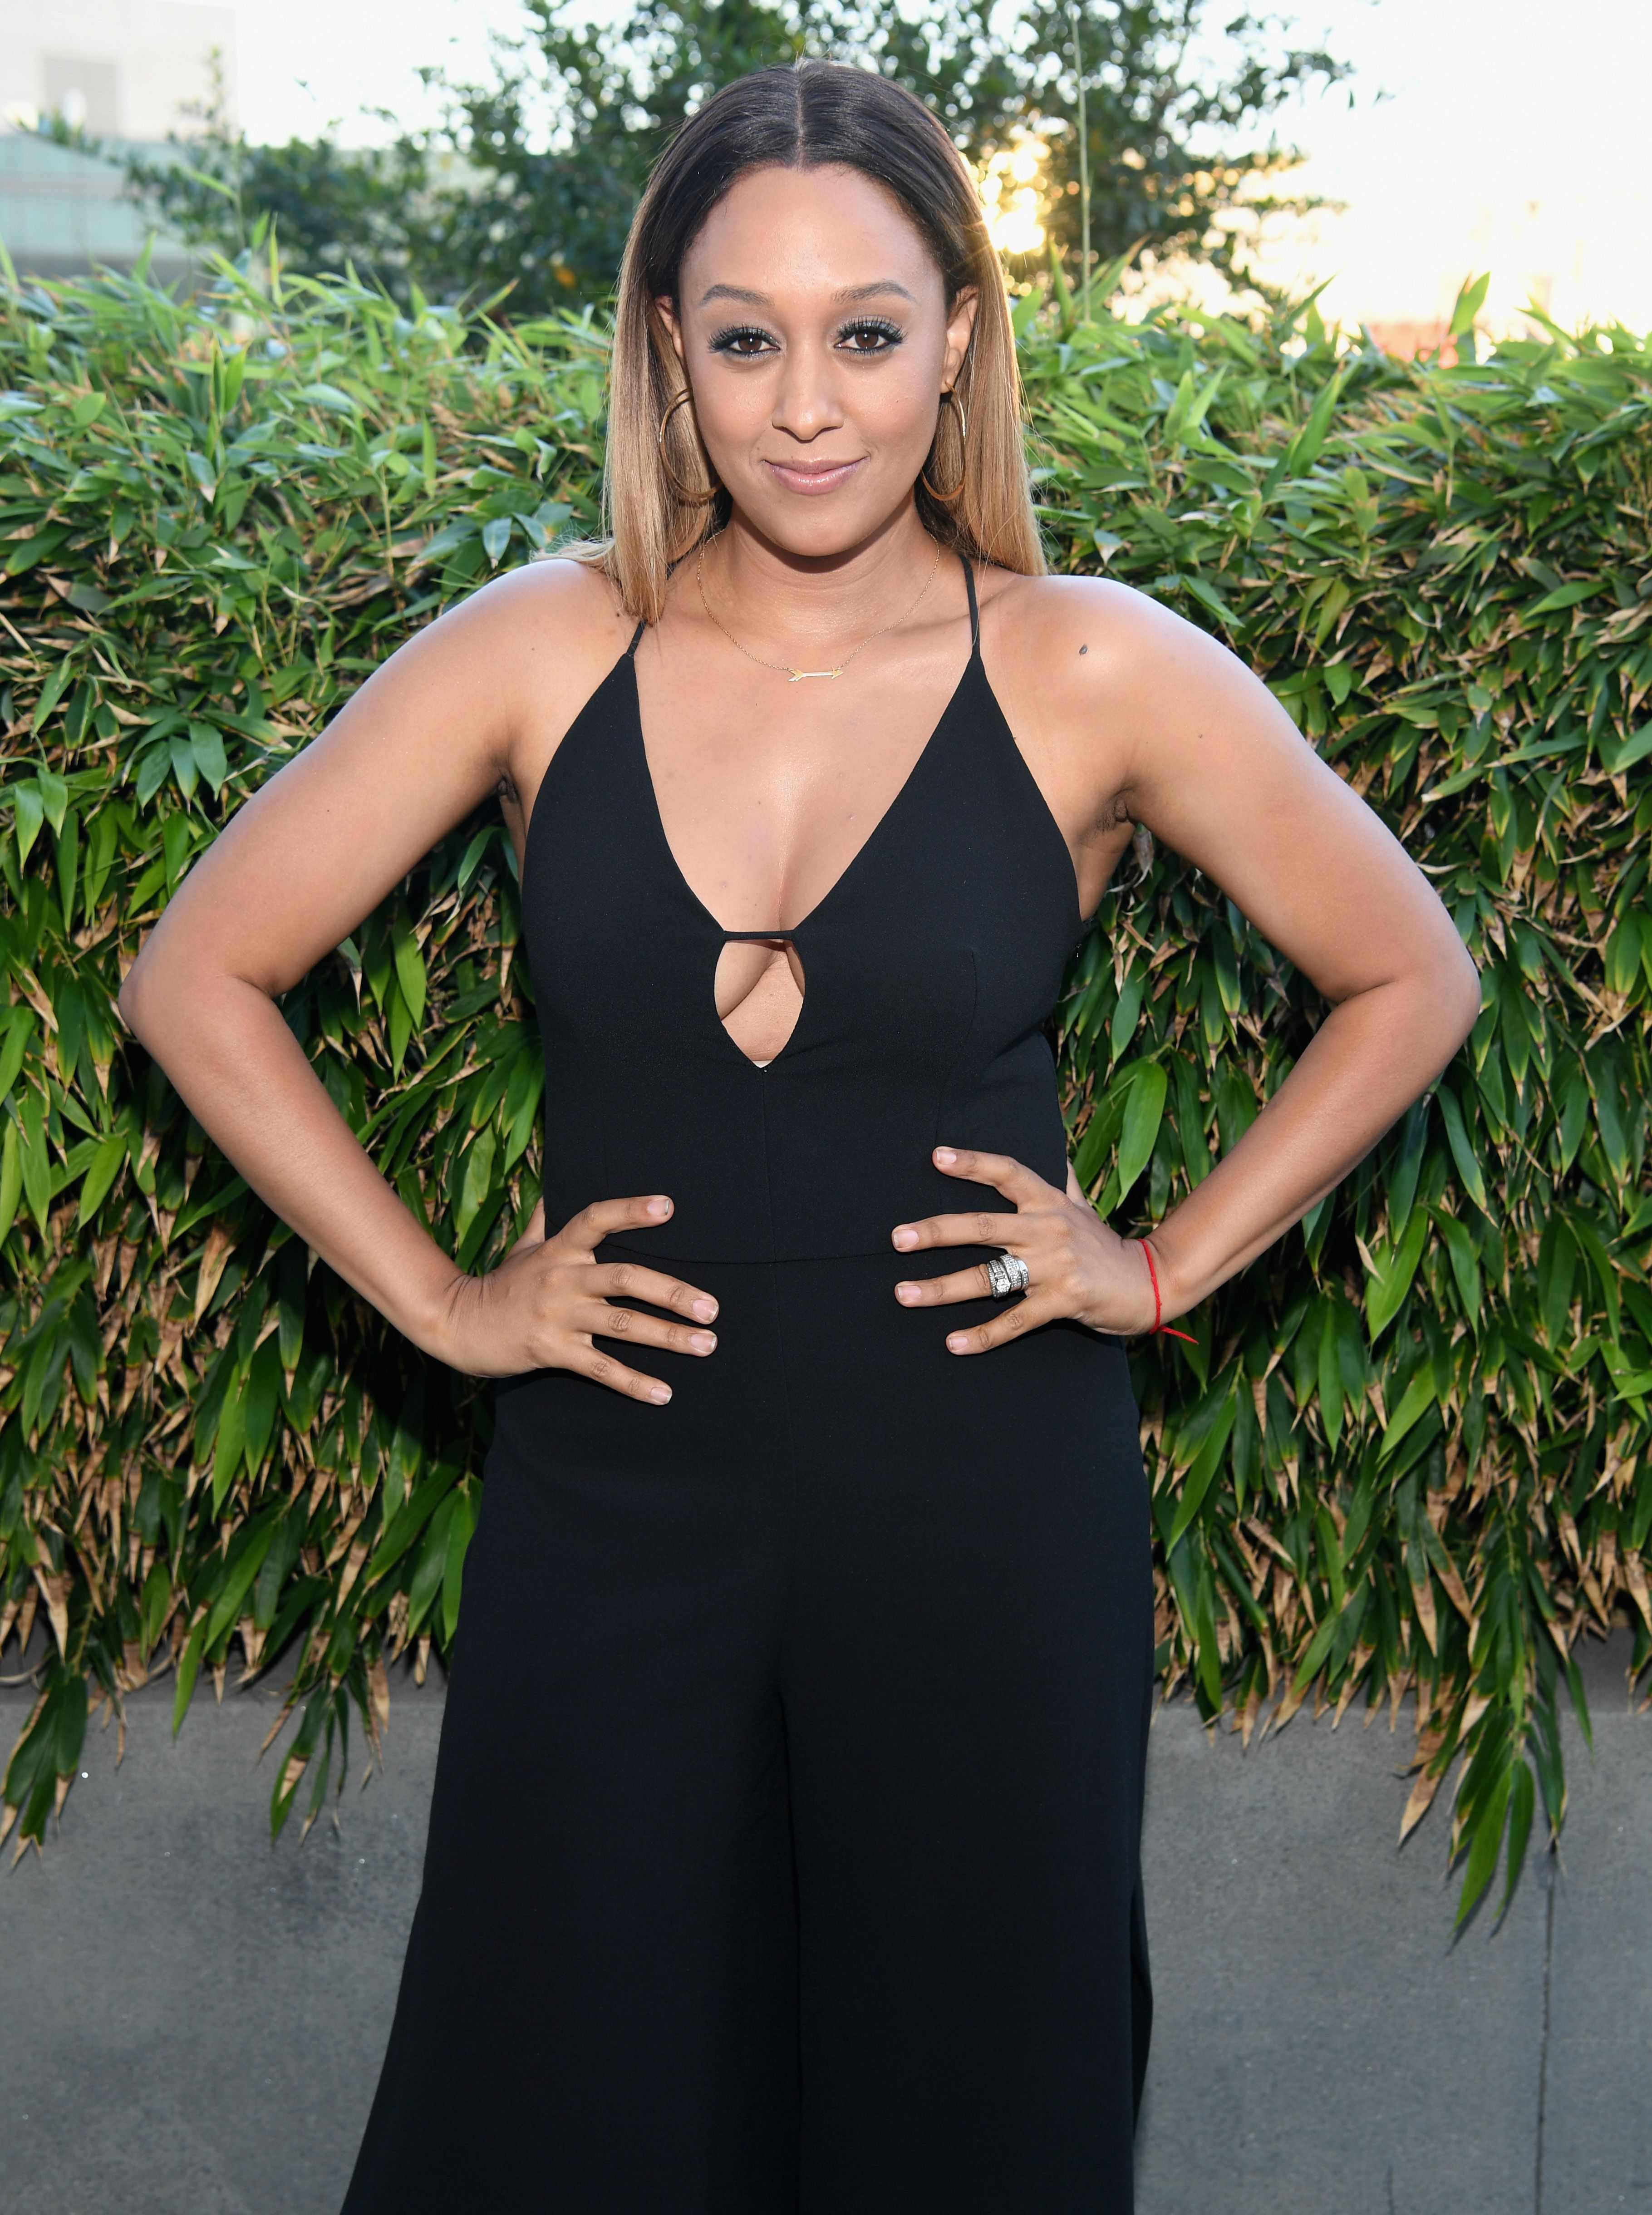 Tia Mowry attends the ABFF Winners Reception and VIP Celebration in honor of the winning filmmakers and artists from the 2016 American Black Film Festival during the 2016 BET Experience at the JW Marriott Rooftop Pool on June 24, 2016 in Los Angeles, California. | Source: Getty Images